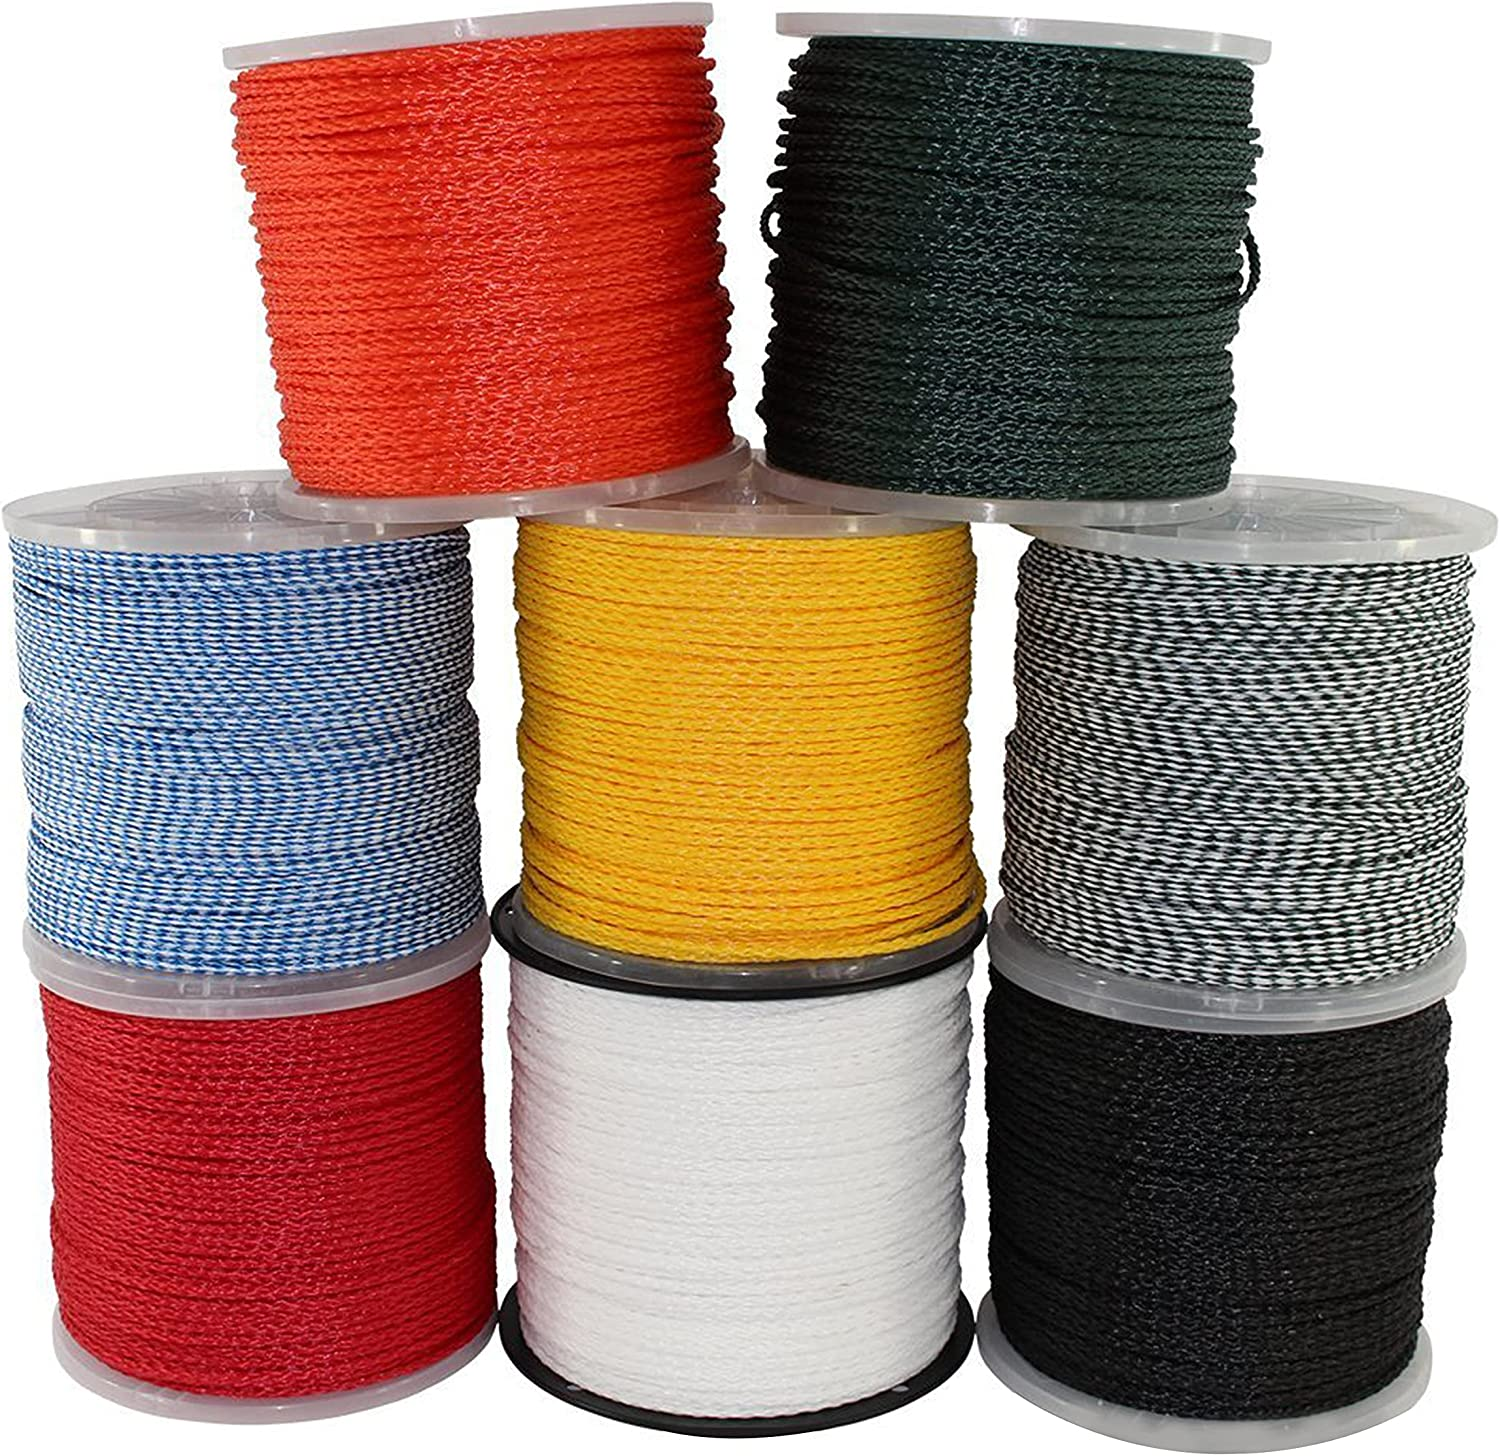 Gifts SGT KNOTS Lightweight Hollow Braid Limited time trial price Polypropylene Rope - Moisture